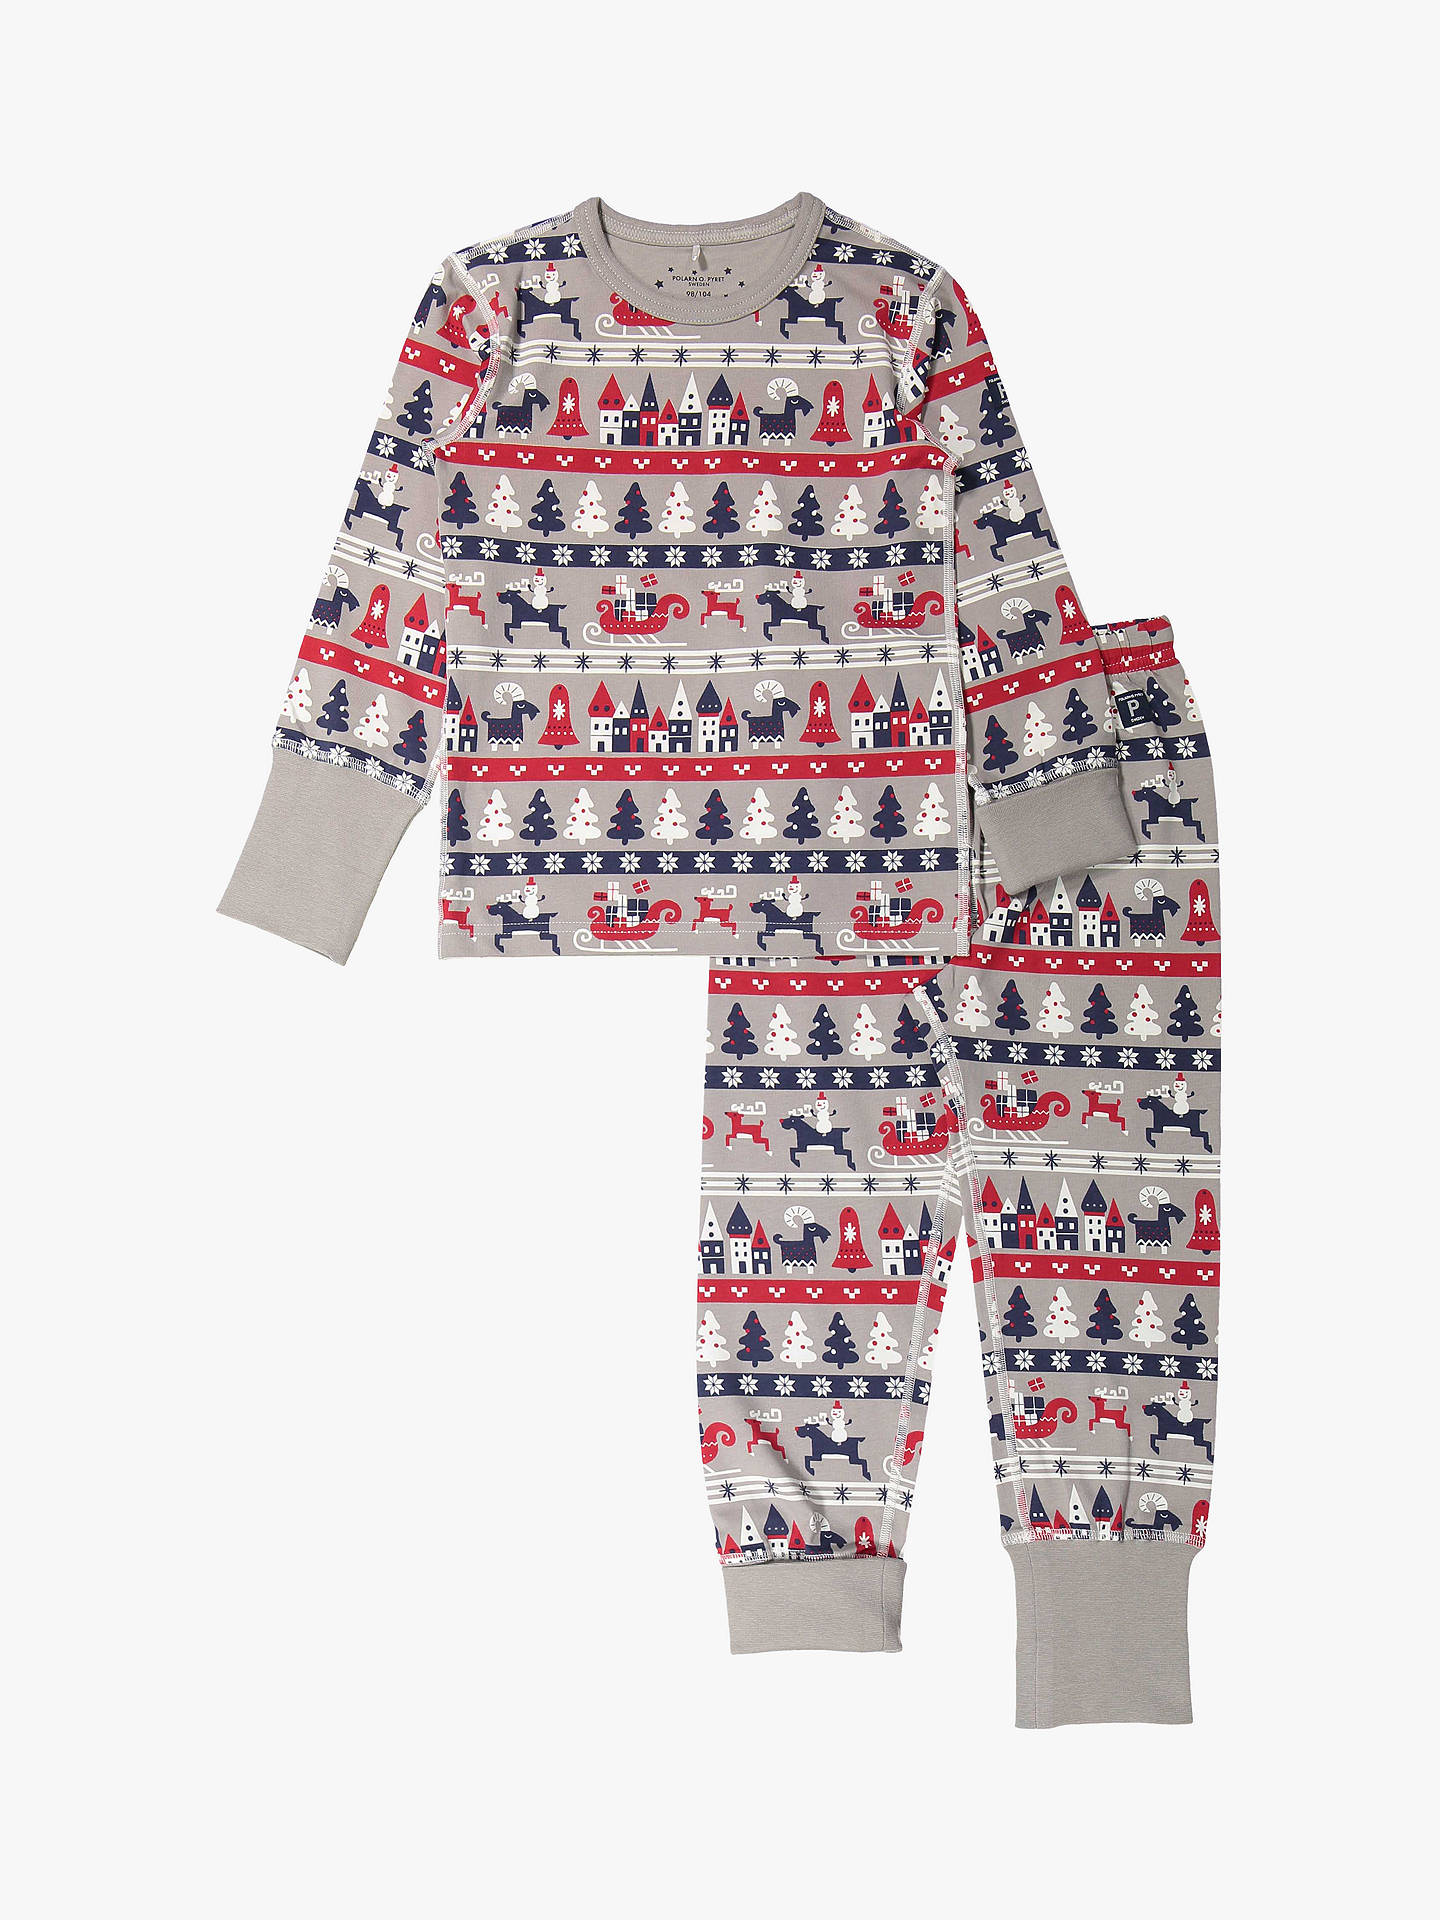 Buy Polarn O. Pyret Baby GOTS Organic Cotton Xmas Pyjamas, Grey, 12-24 months Online at johnlewis.com